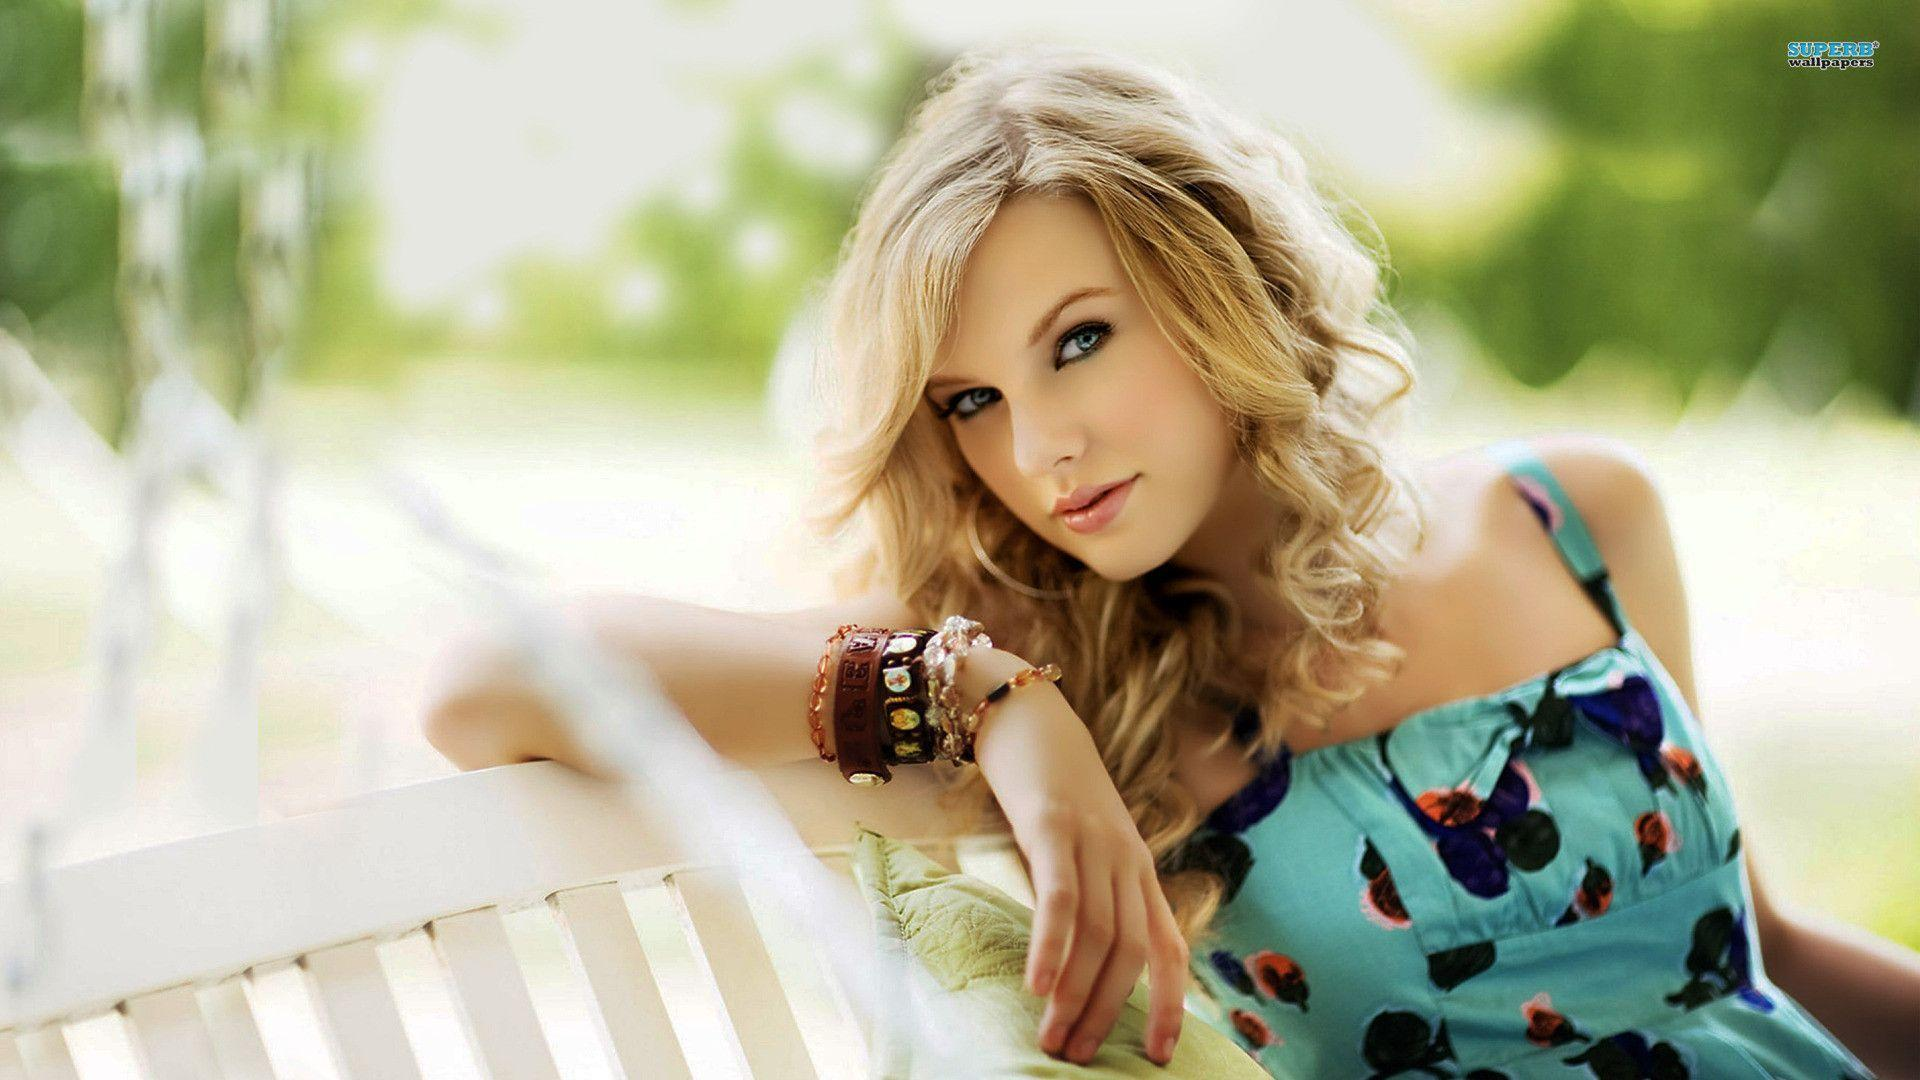 Taylor Swift Backgrounds 1920x1080